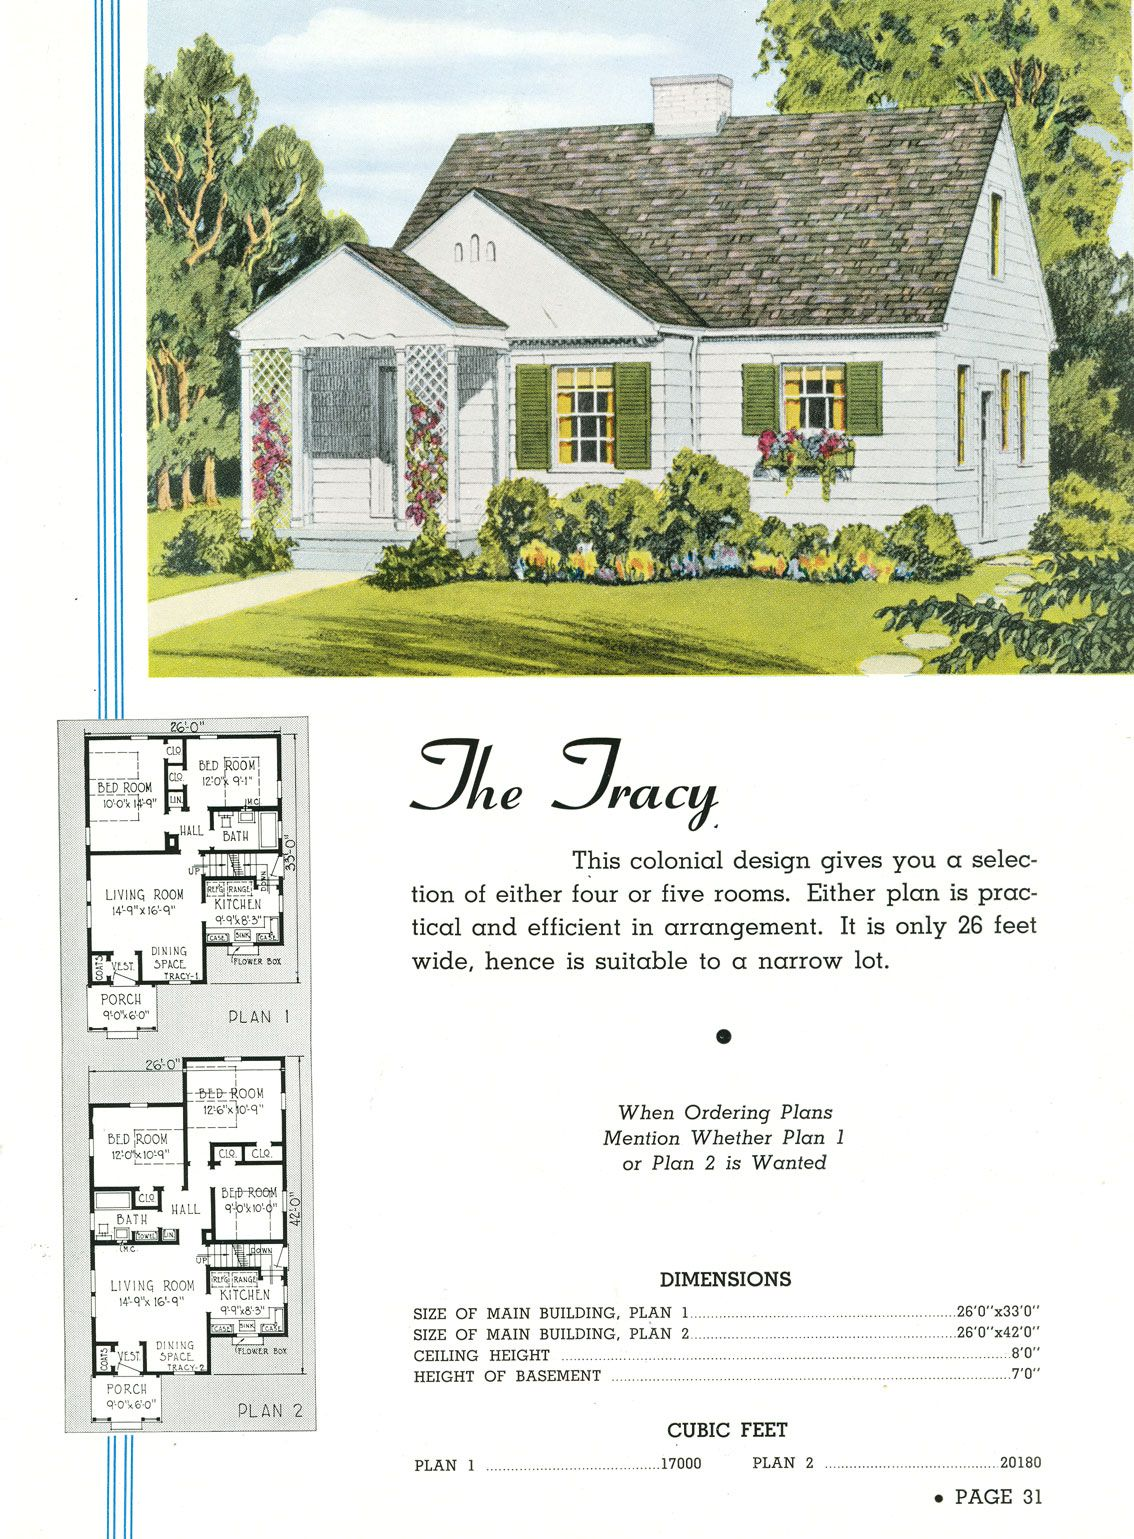 When I Was Growing Up We Lived In A Traditional Two Story House Built In The 1920s Where You Walked Vintage House Plans Small House Plans Home Garden Design